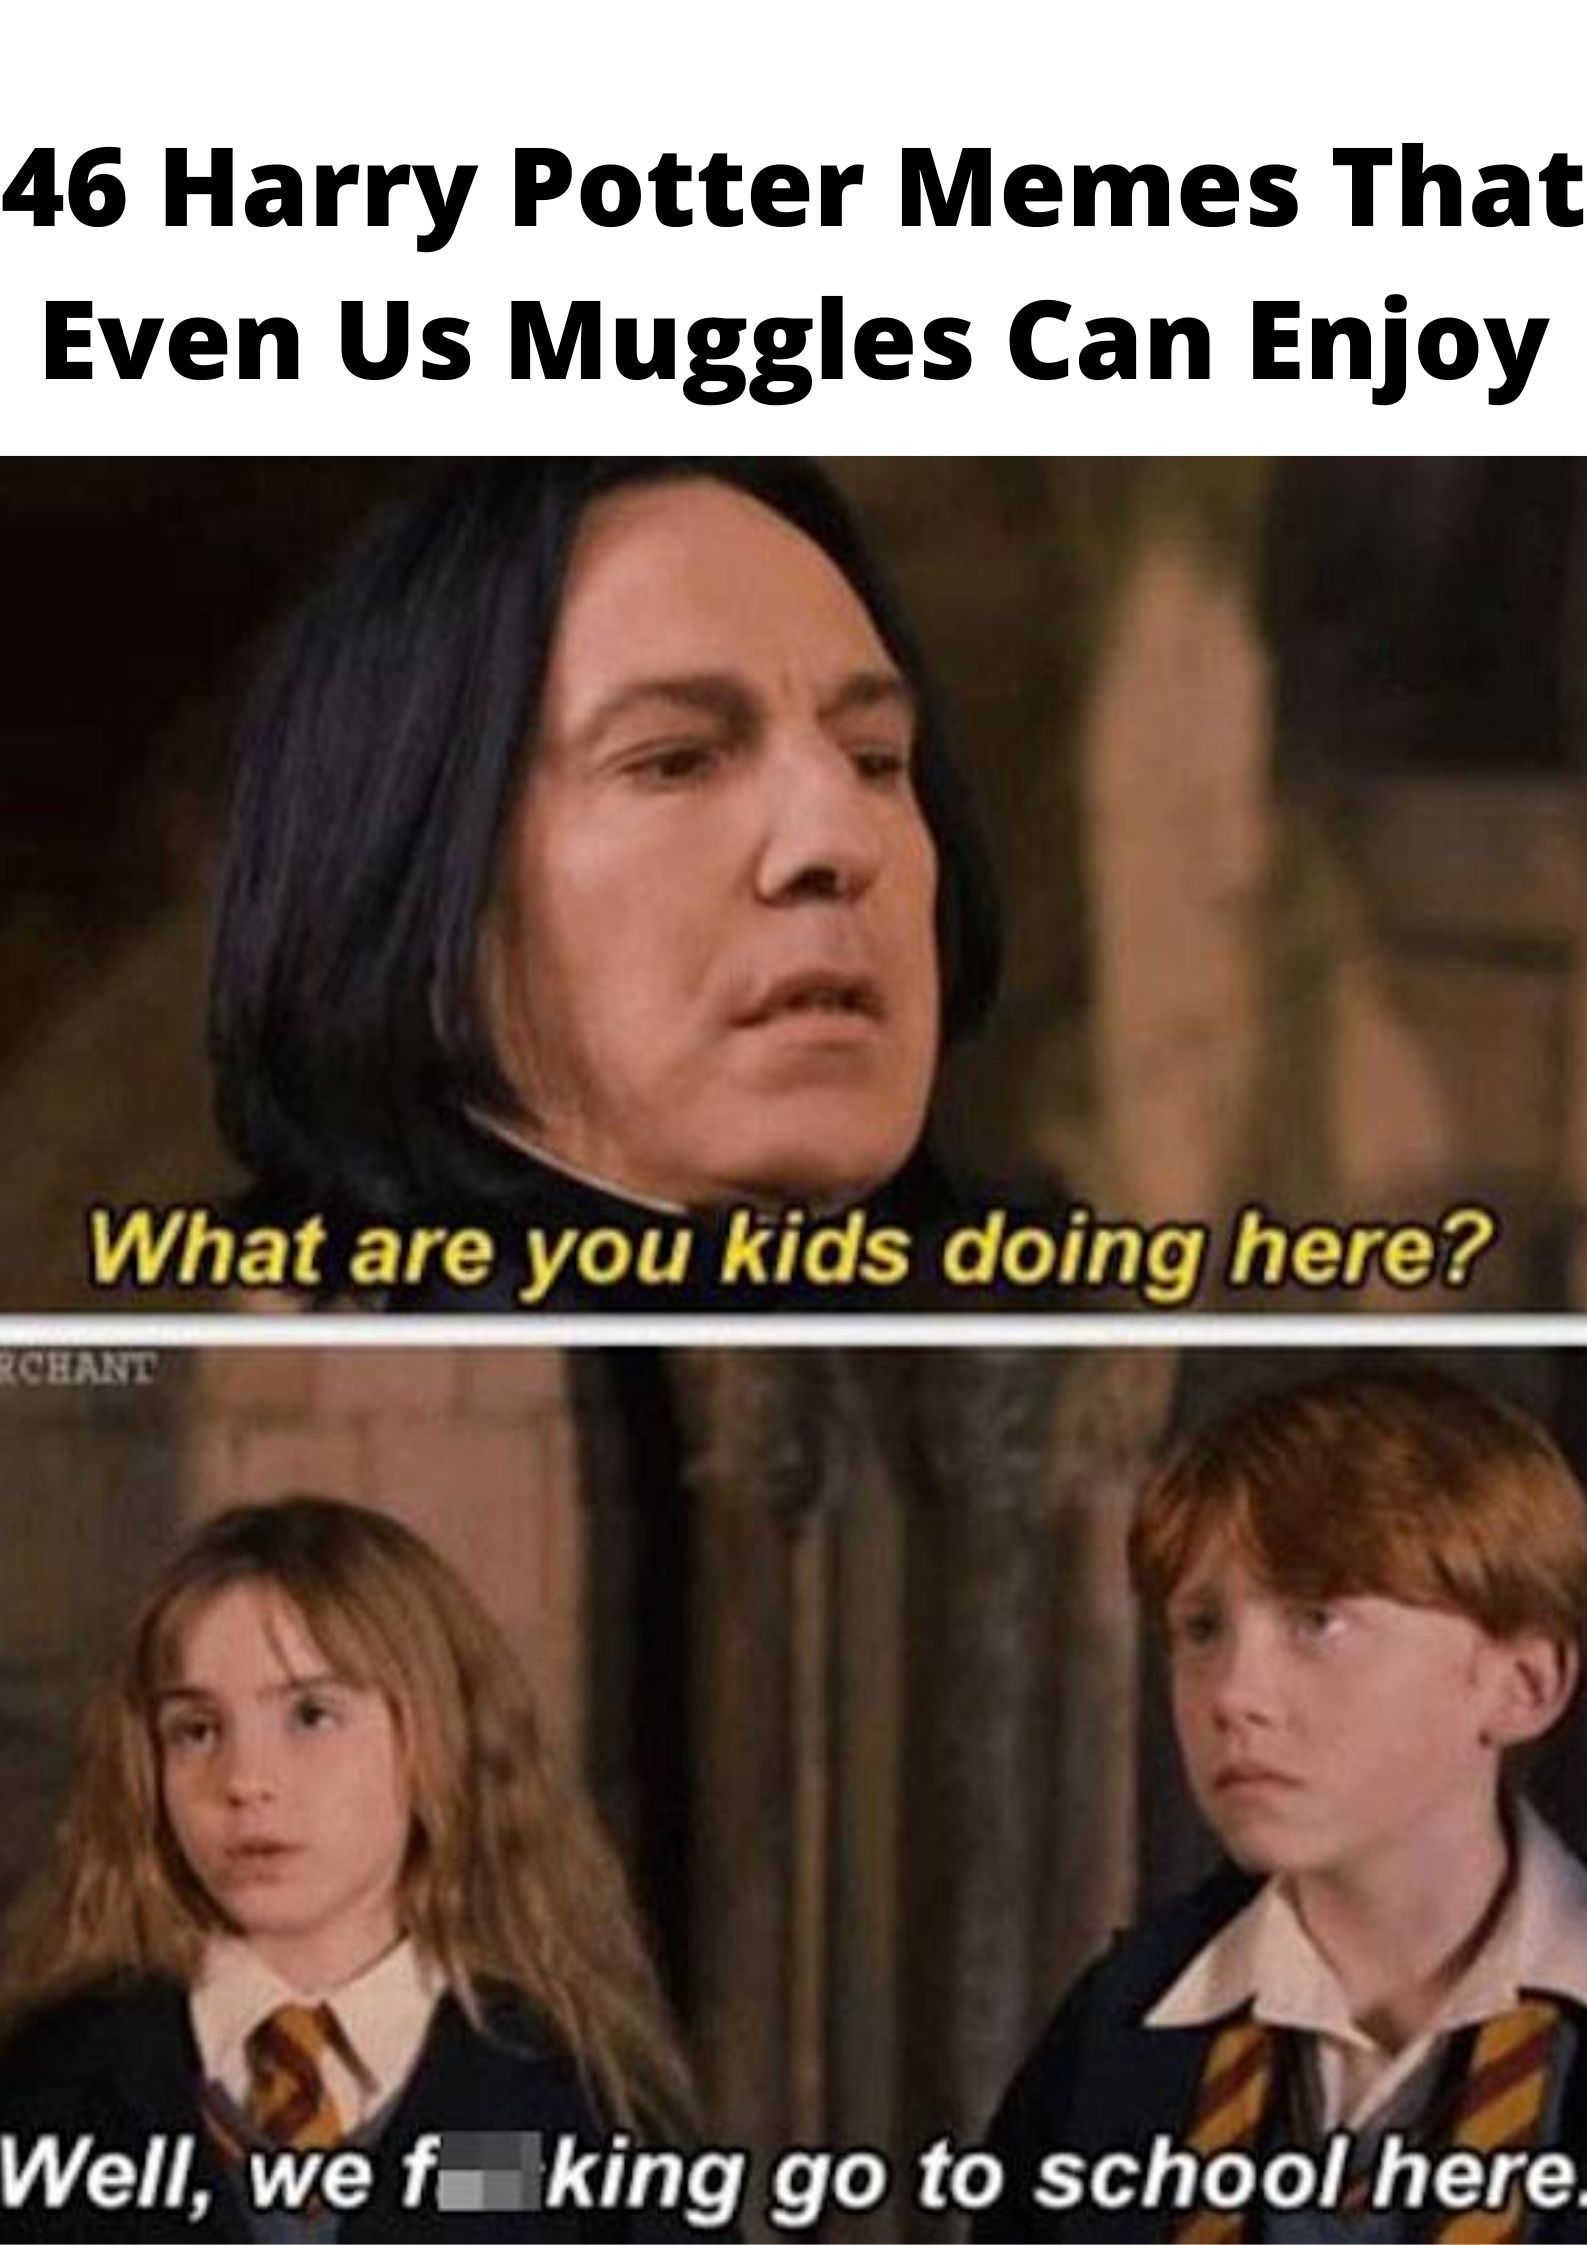 46 Harry Potter Memes That Even Us Muggles Can Enjoy Harry Potter Memes Memes Awkward Photos